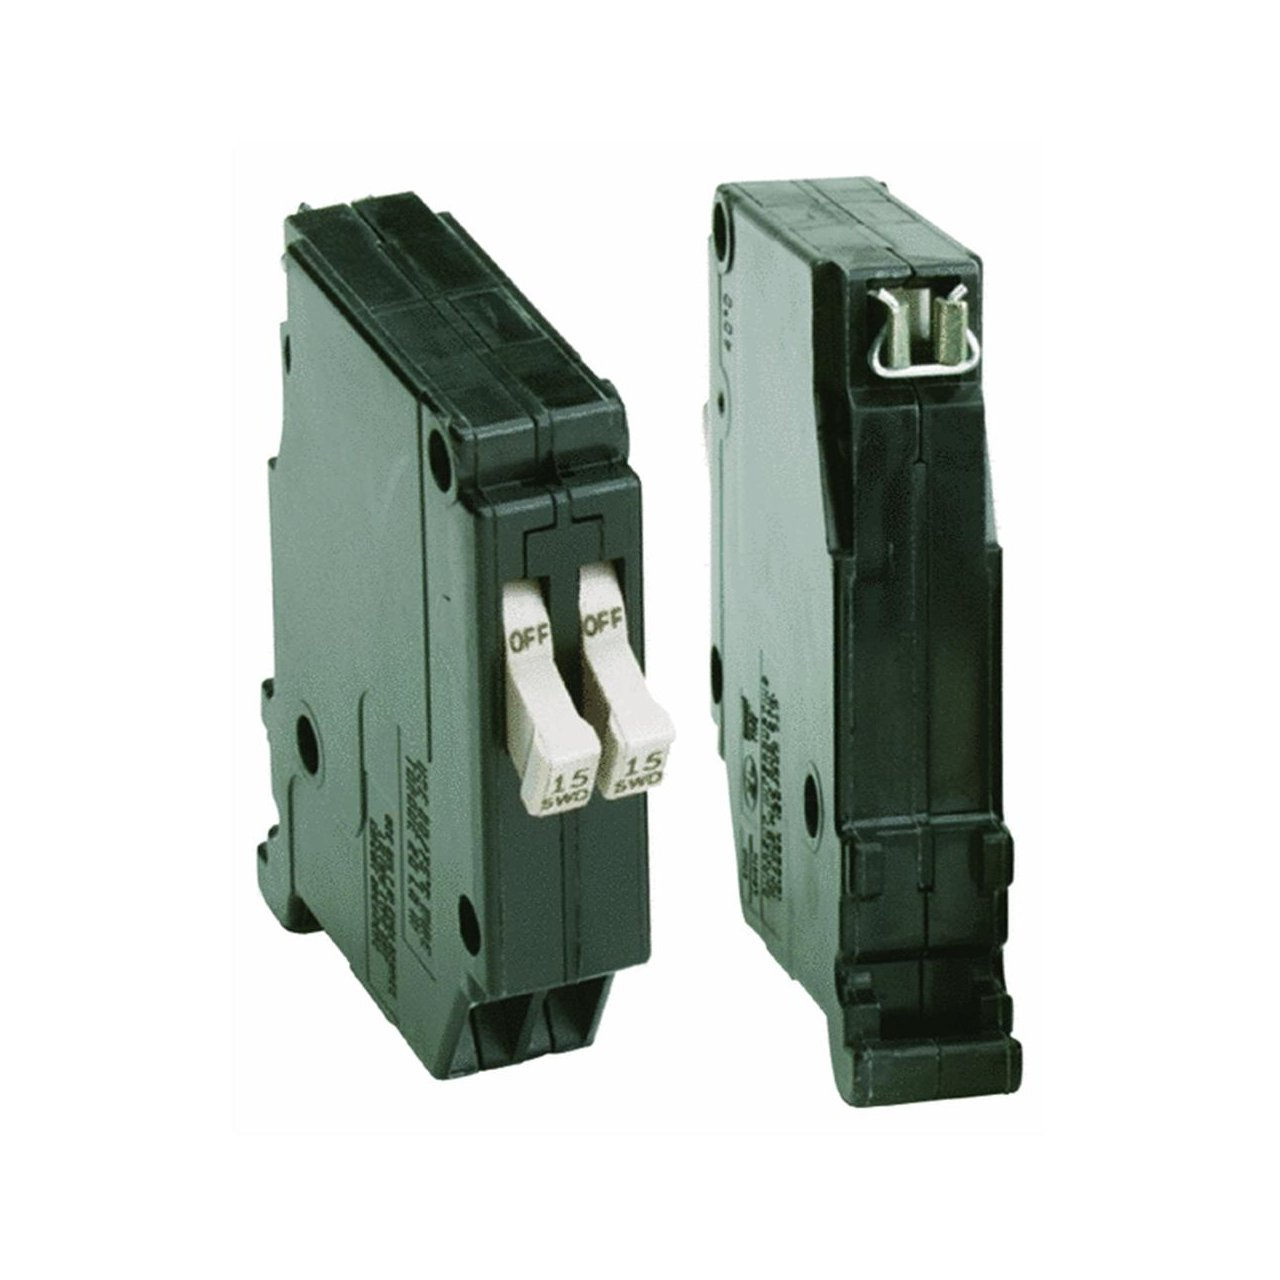 CHT2020 Cutler Hammer Twin Plug-On Circuit Breaker product image